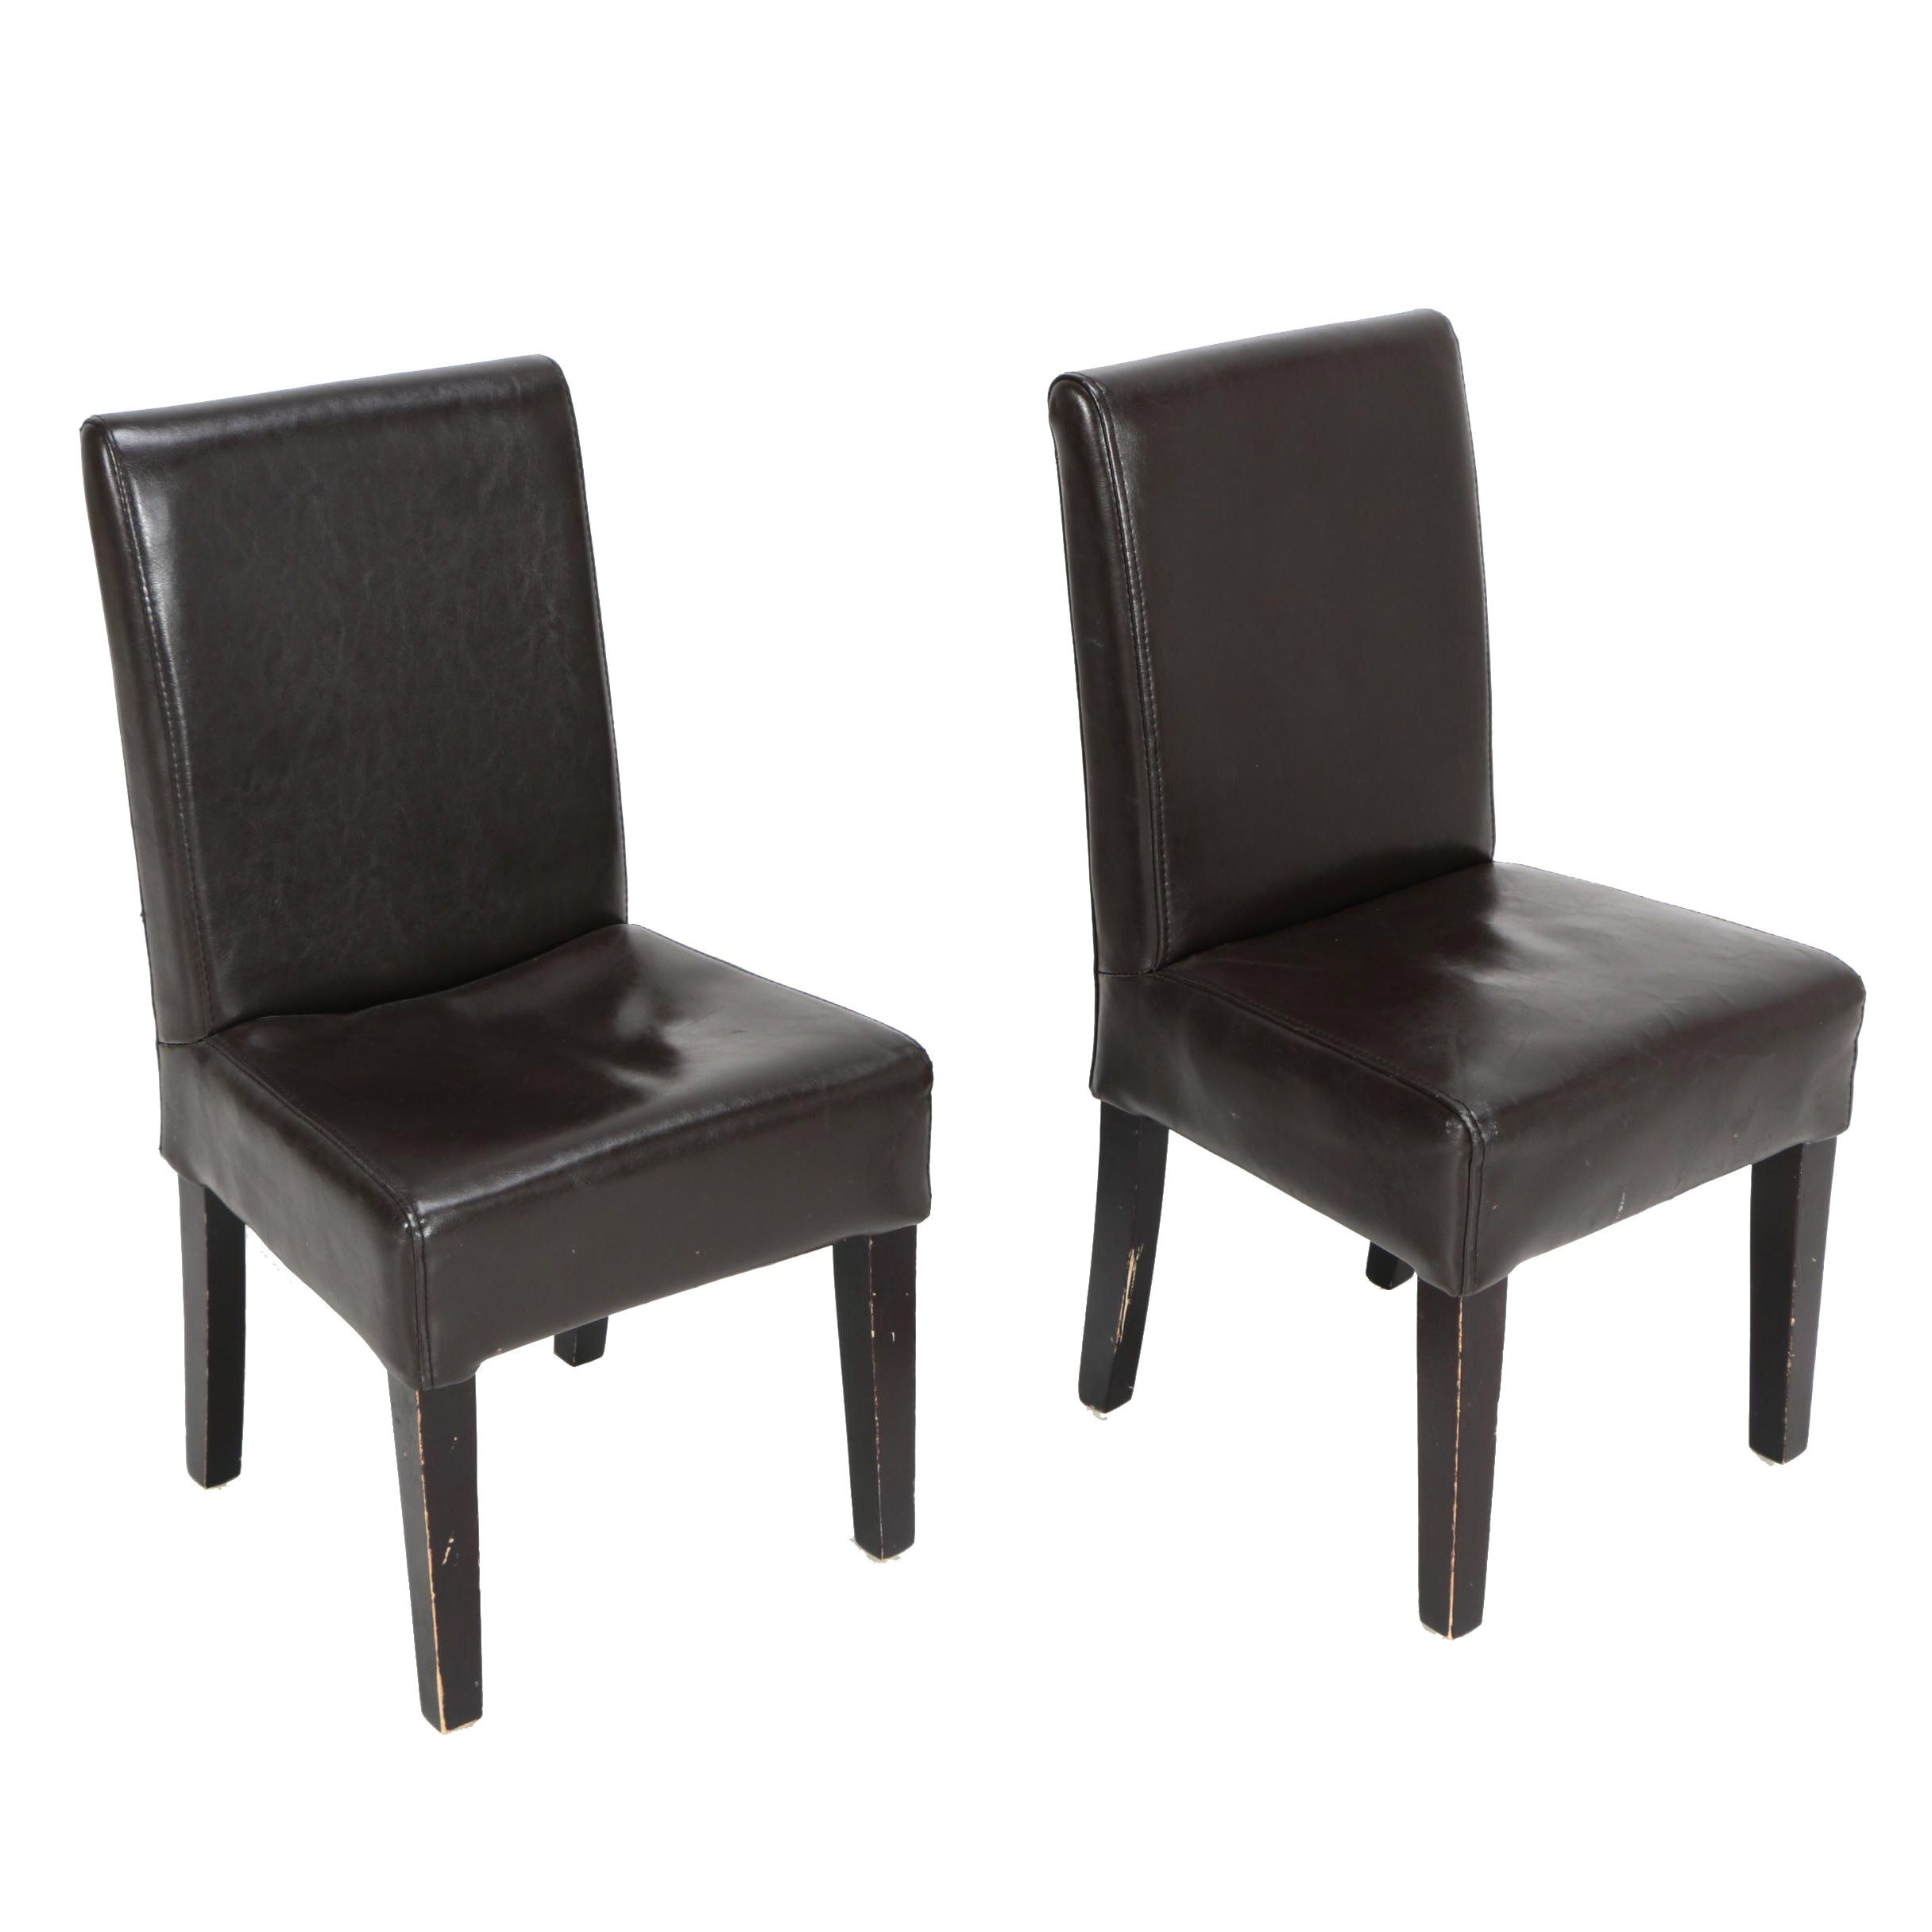 Contemporary Children's Faux Leather Upholstered Side Chairs